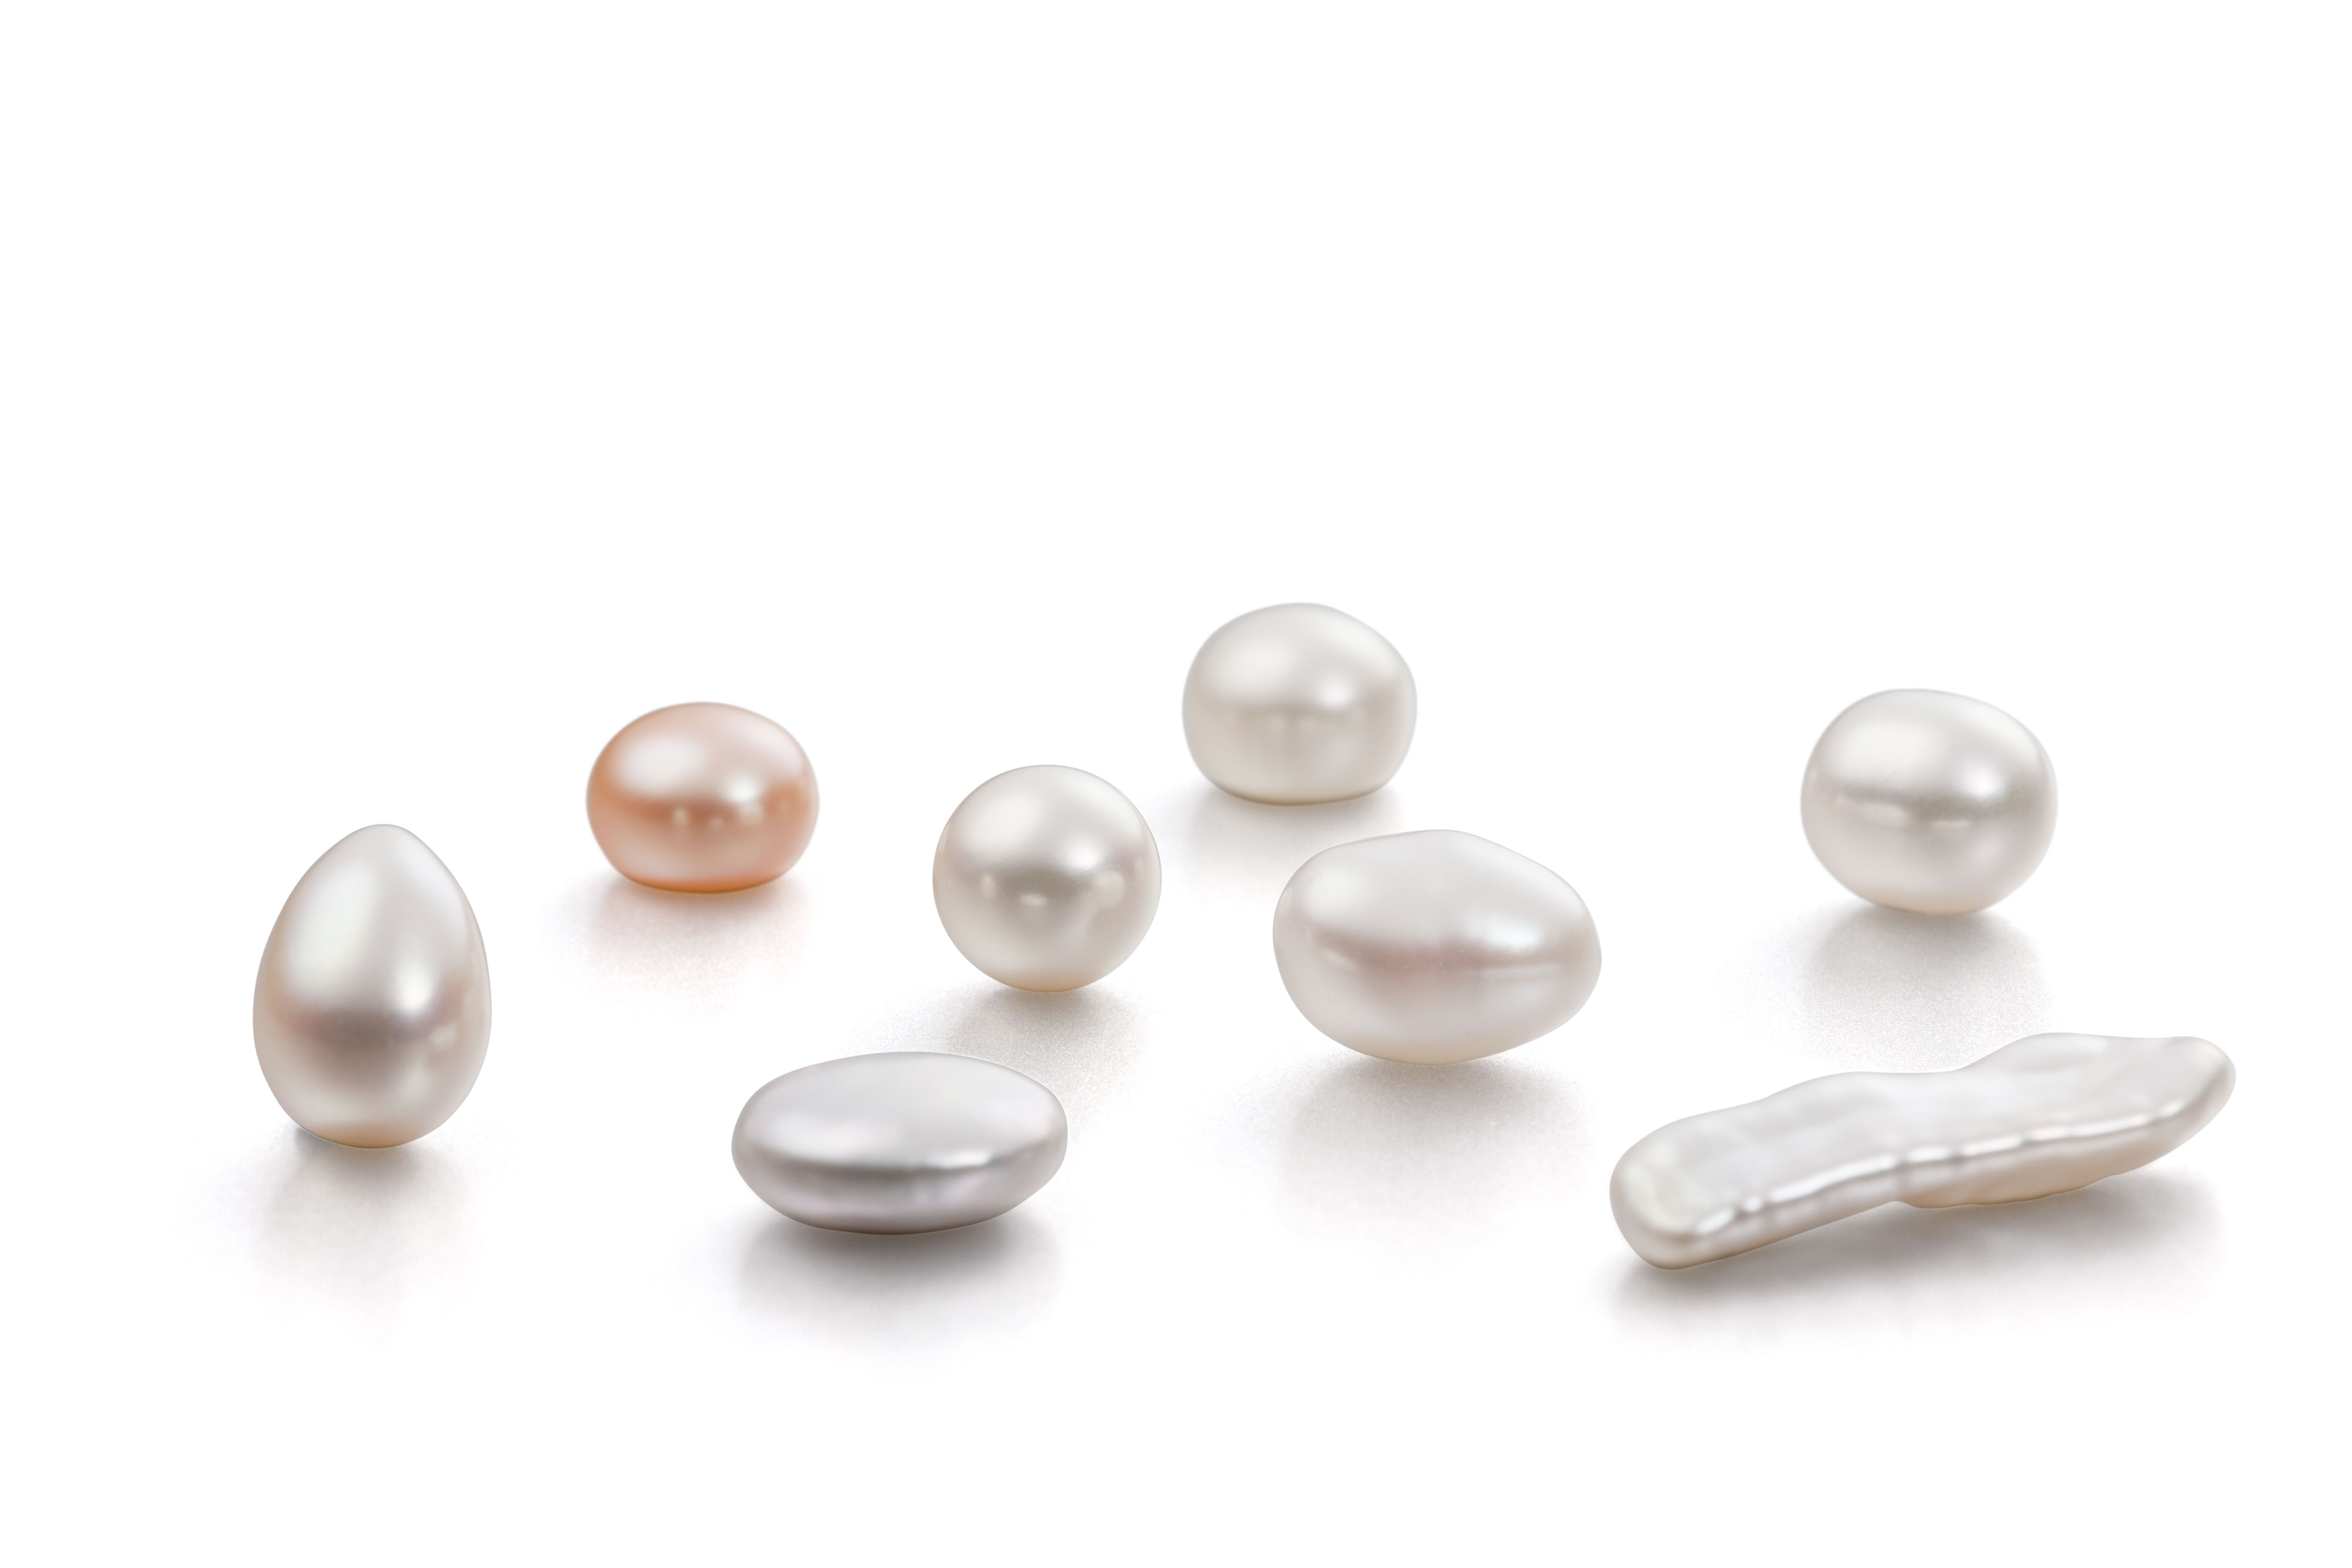 pearl sea copy strand of products beads pearls fresh water xl paradise graduated